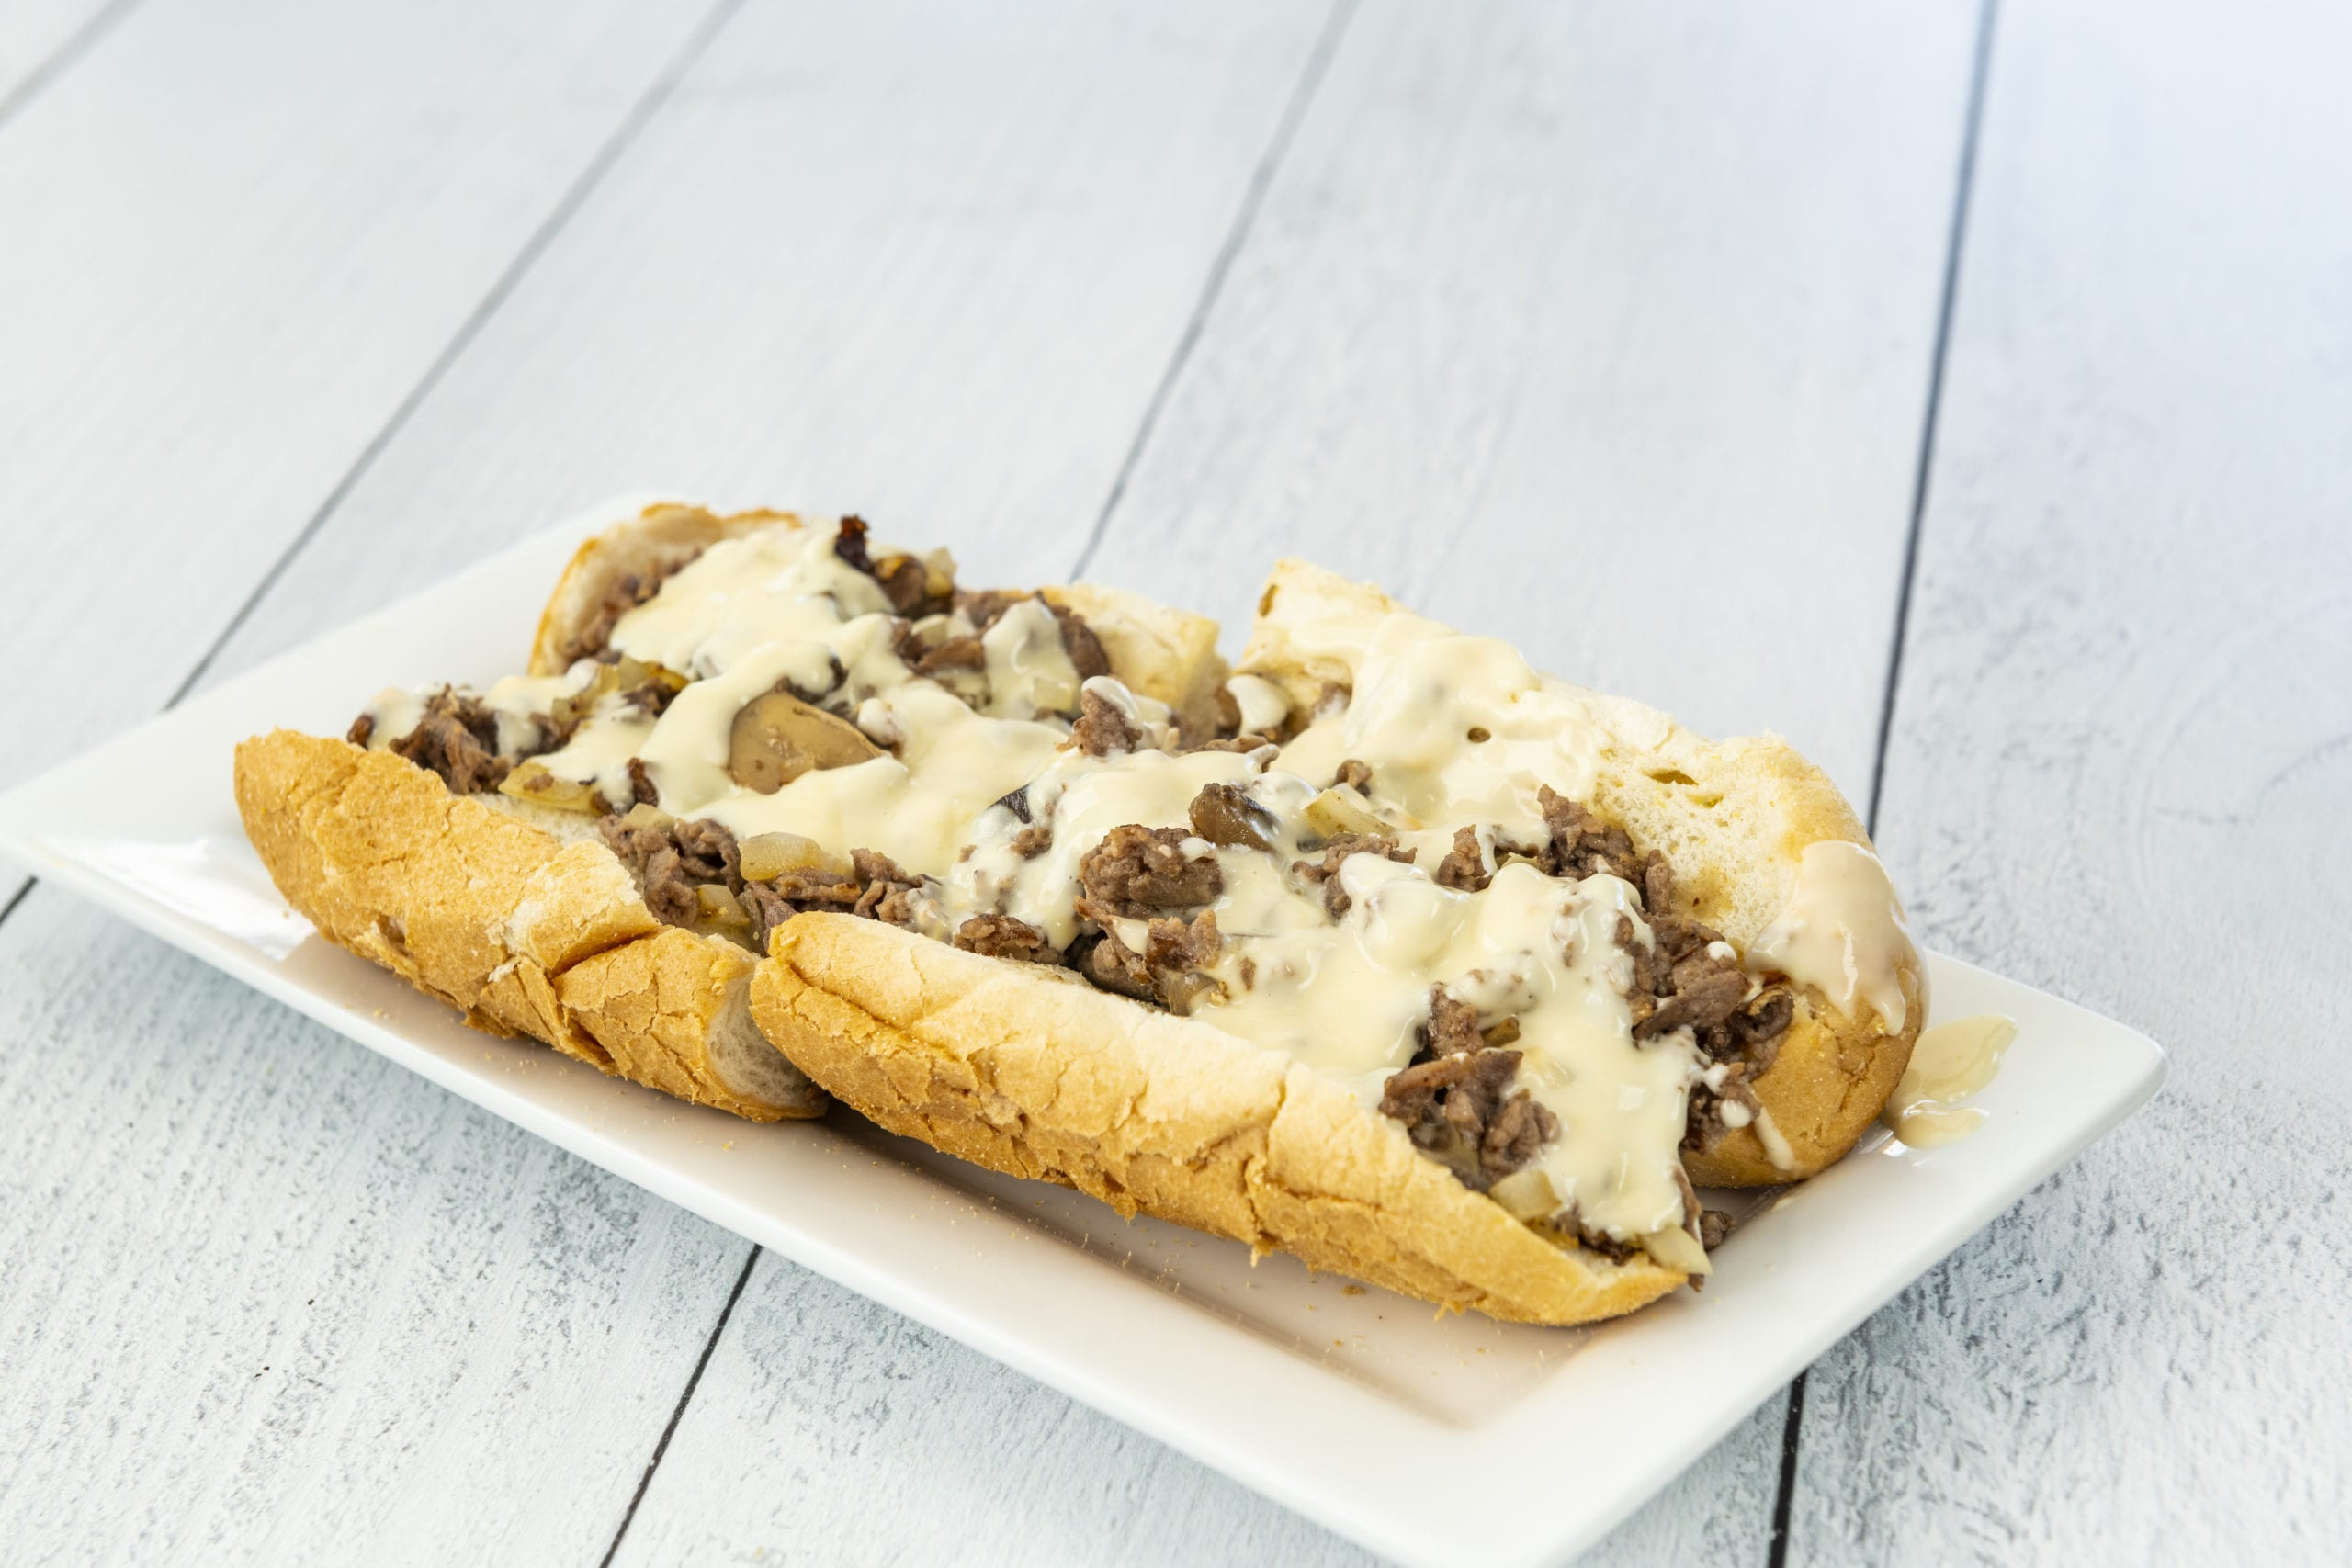 Philly Cheesesteak   CD Anchor Key West